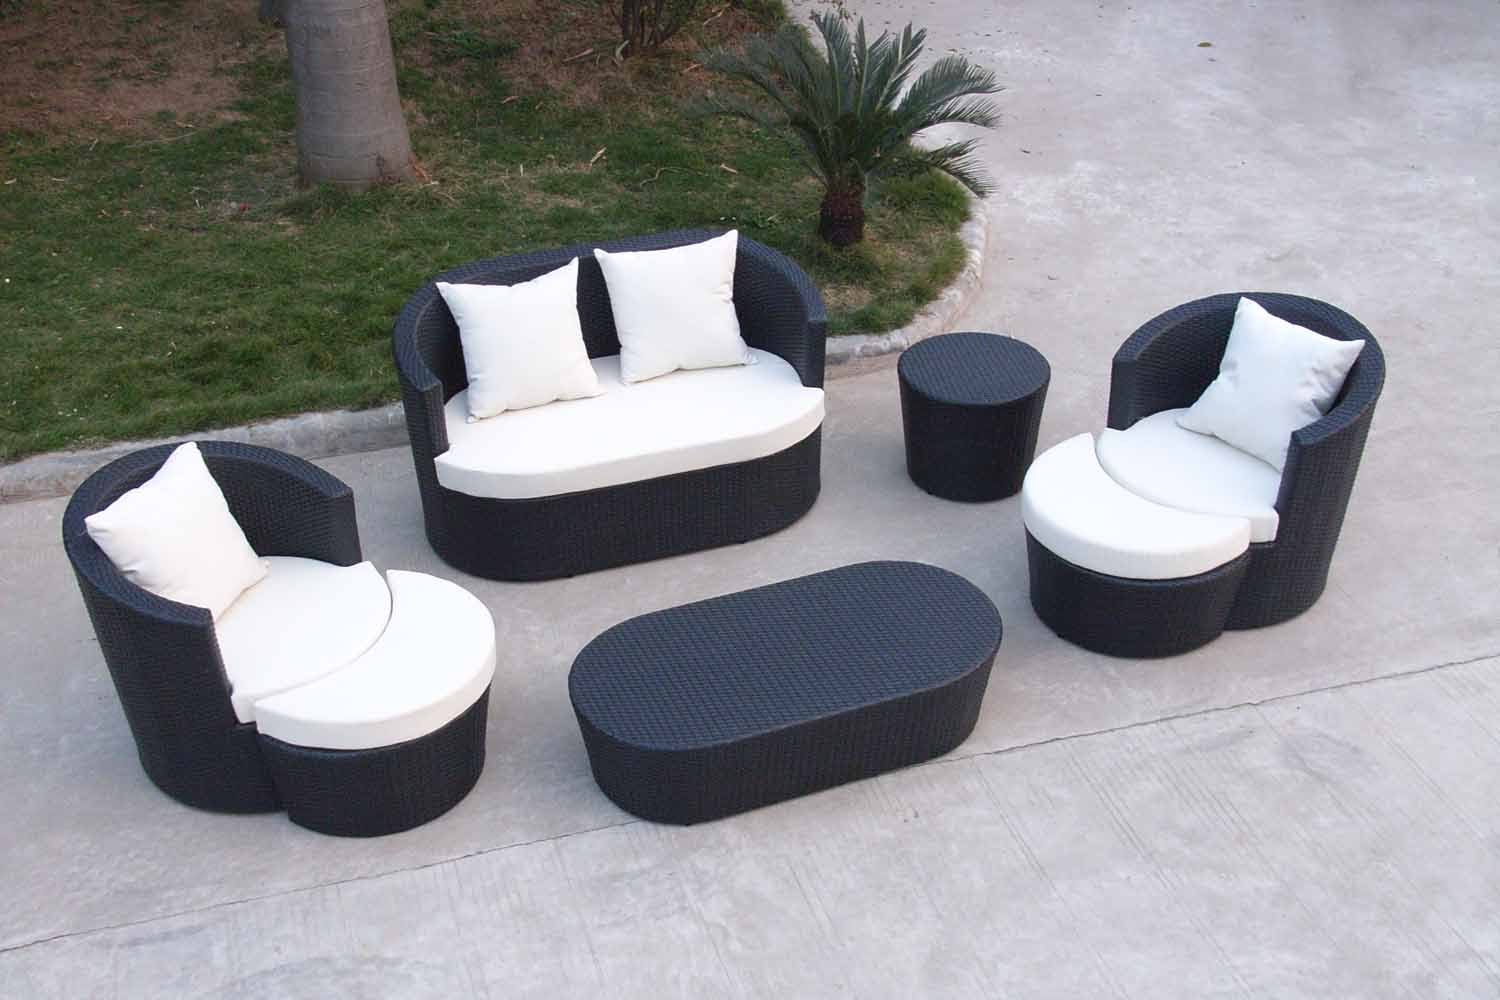 Fantastic Outdoor Wicker Patio Furniture - Outdoor Furniture Ideas